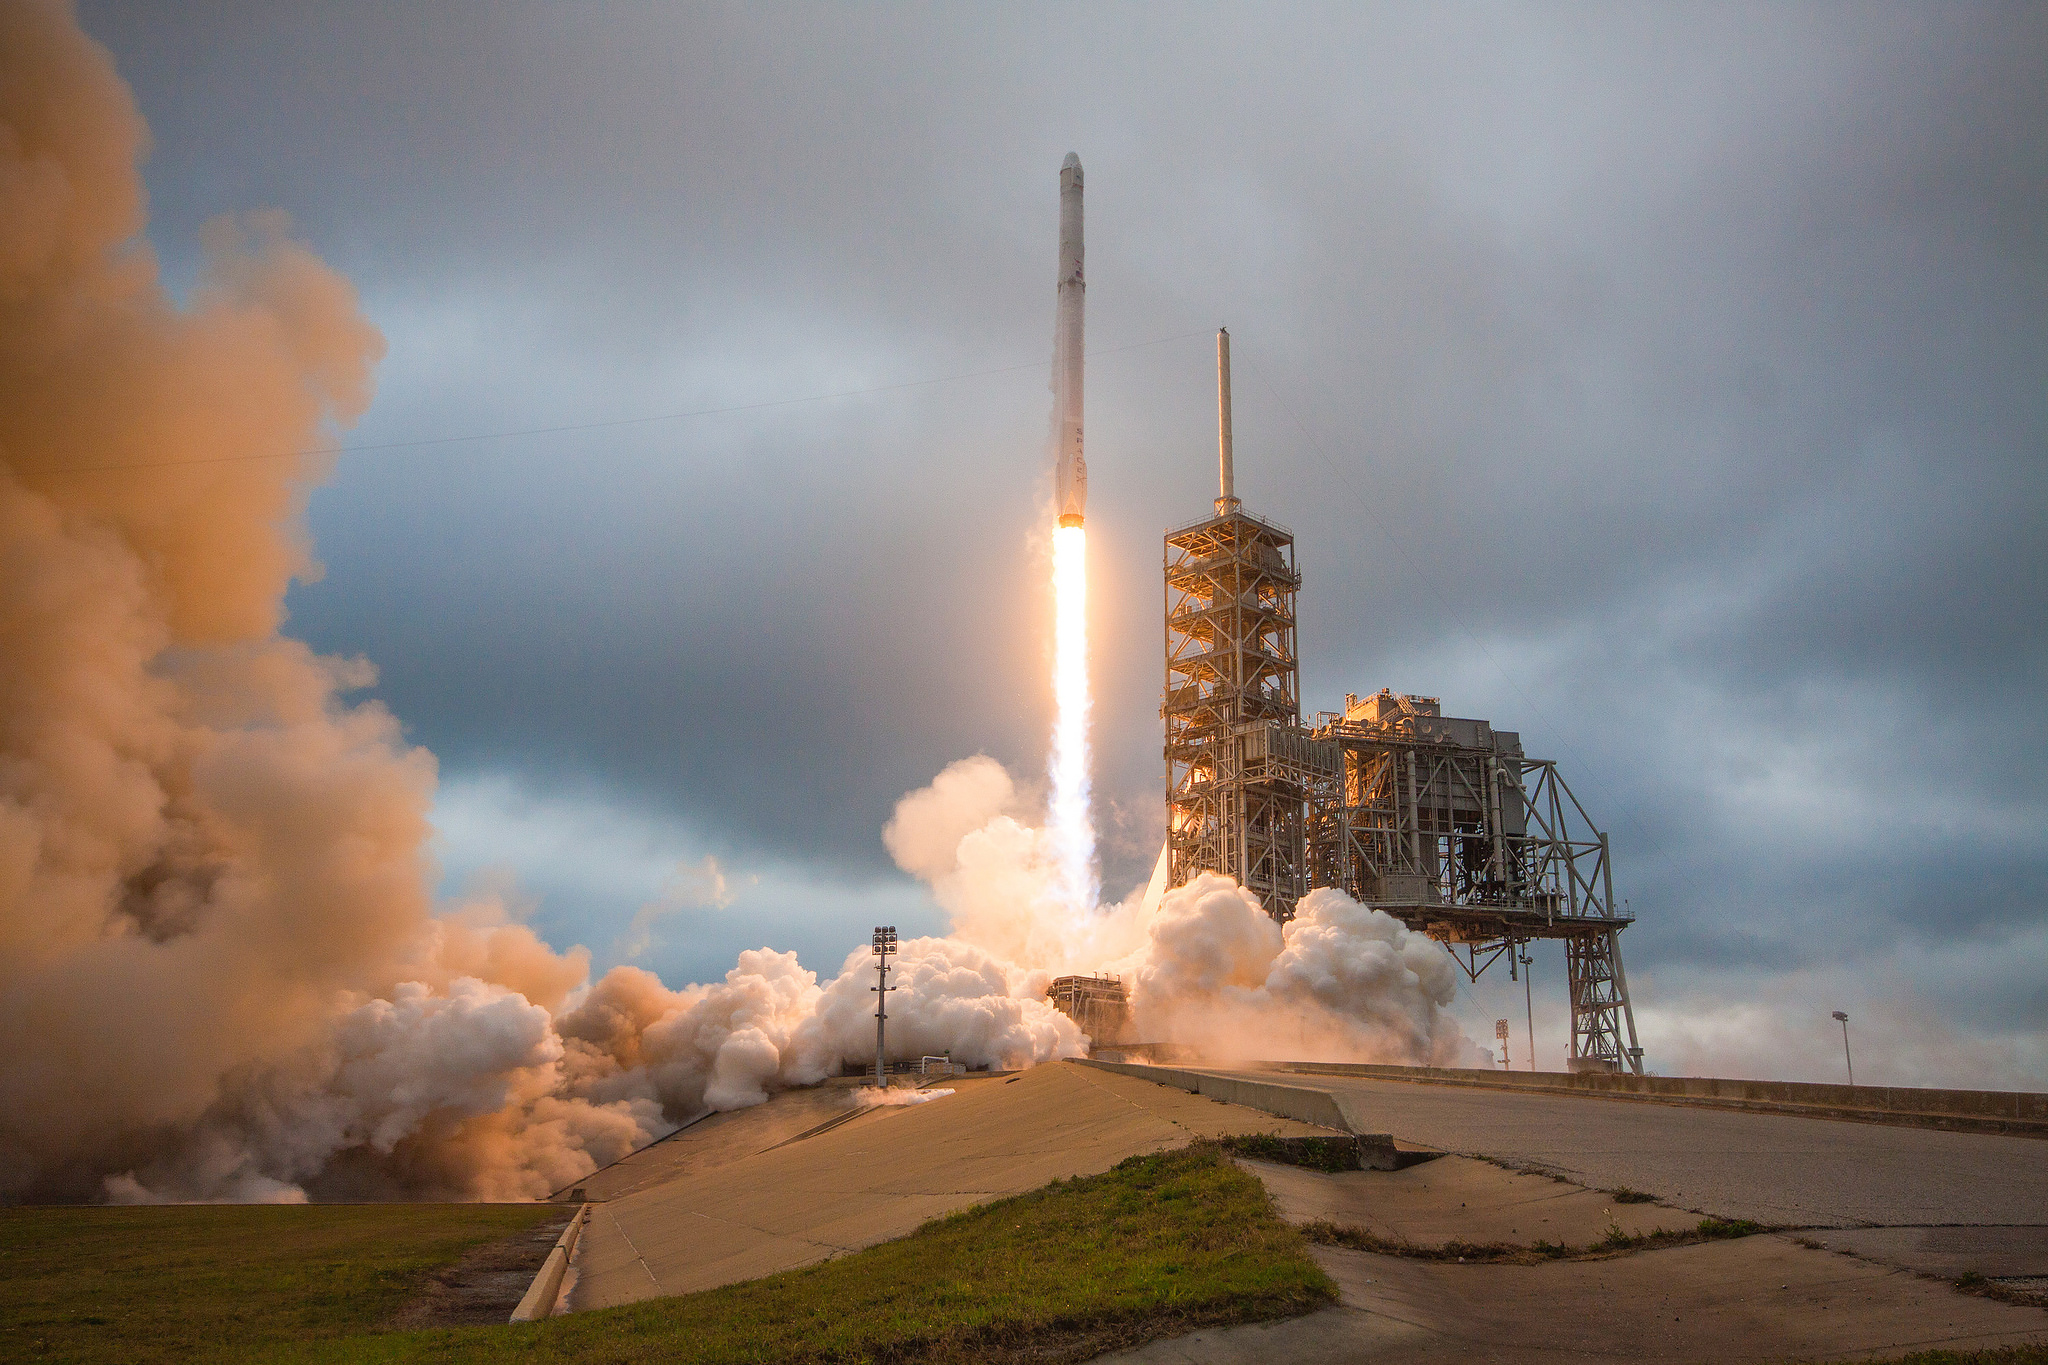 SpaceX Rocket Launch (& Landing) Lights Up Leaden Sky in These Amazing Views